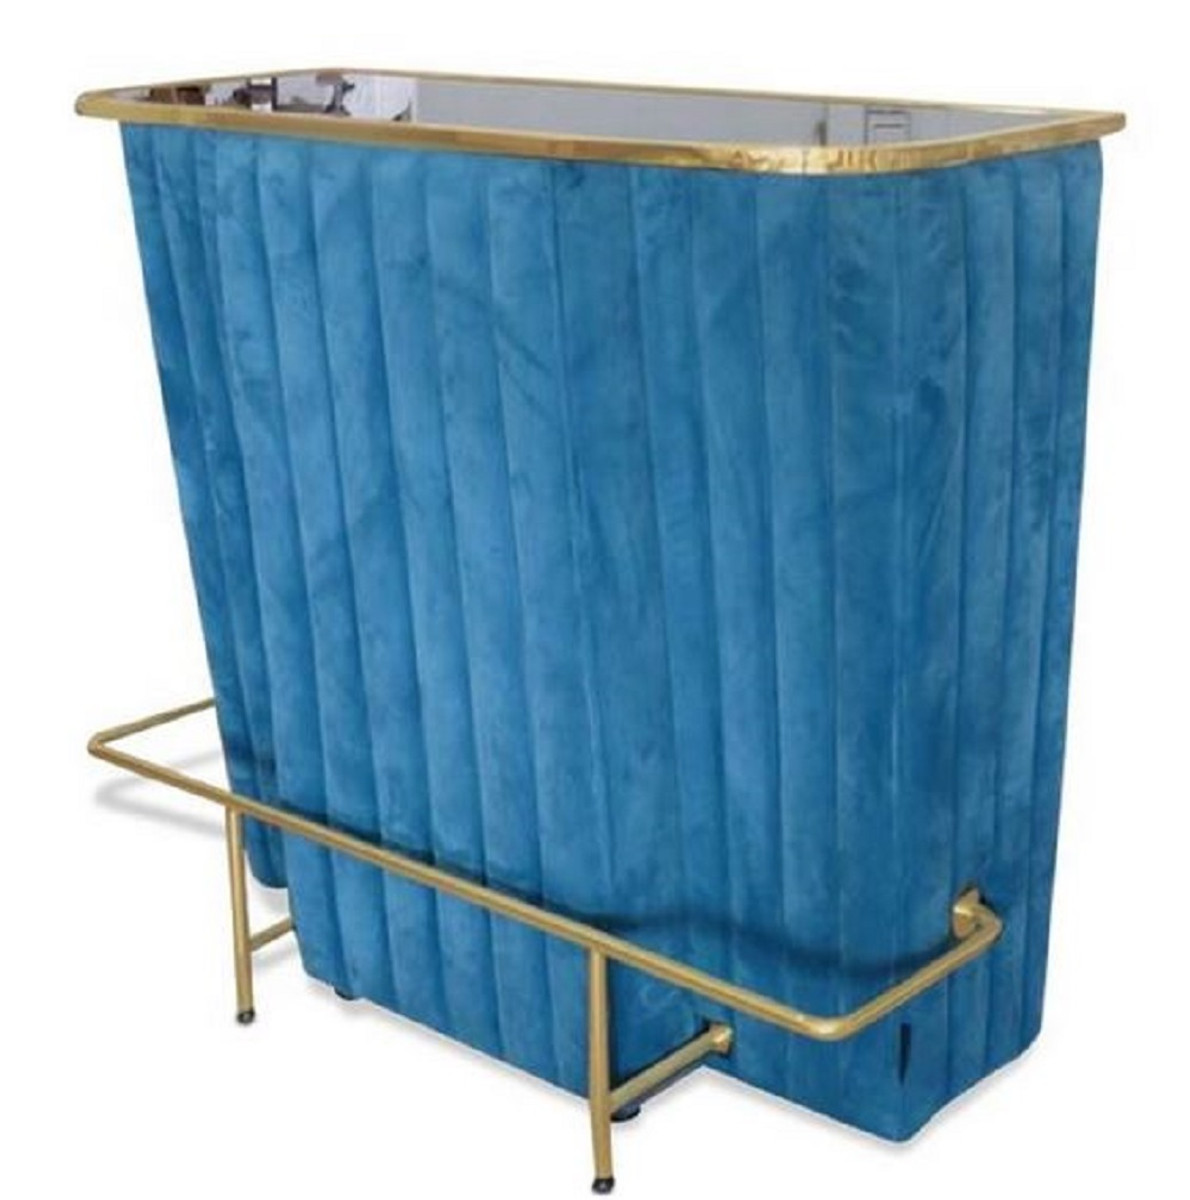 Casa Padrino Luxury Bar Counter Blue Gold 120 X 48 X H 105 Cm Bar Counter With Glass Top And Foot Rest Bar Cabinet Bar Furniture Luxury Quality